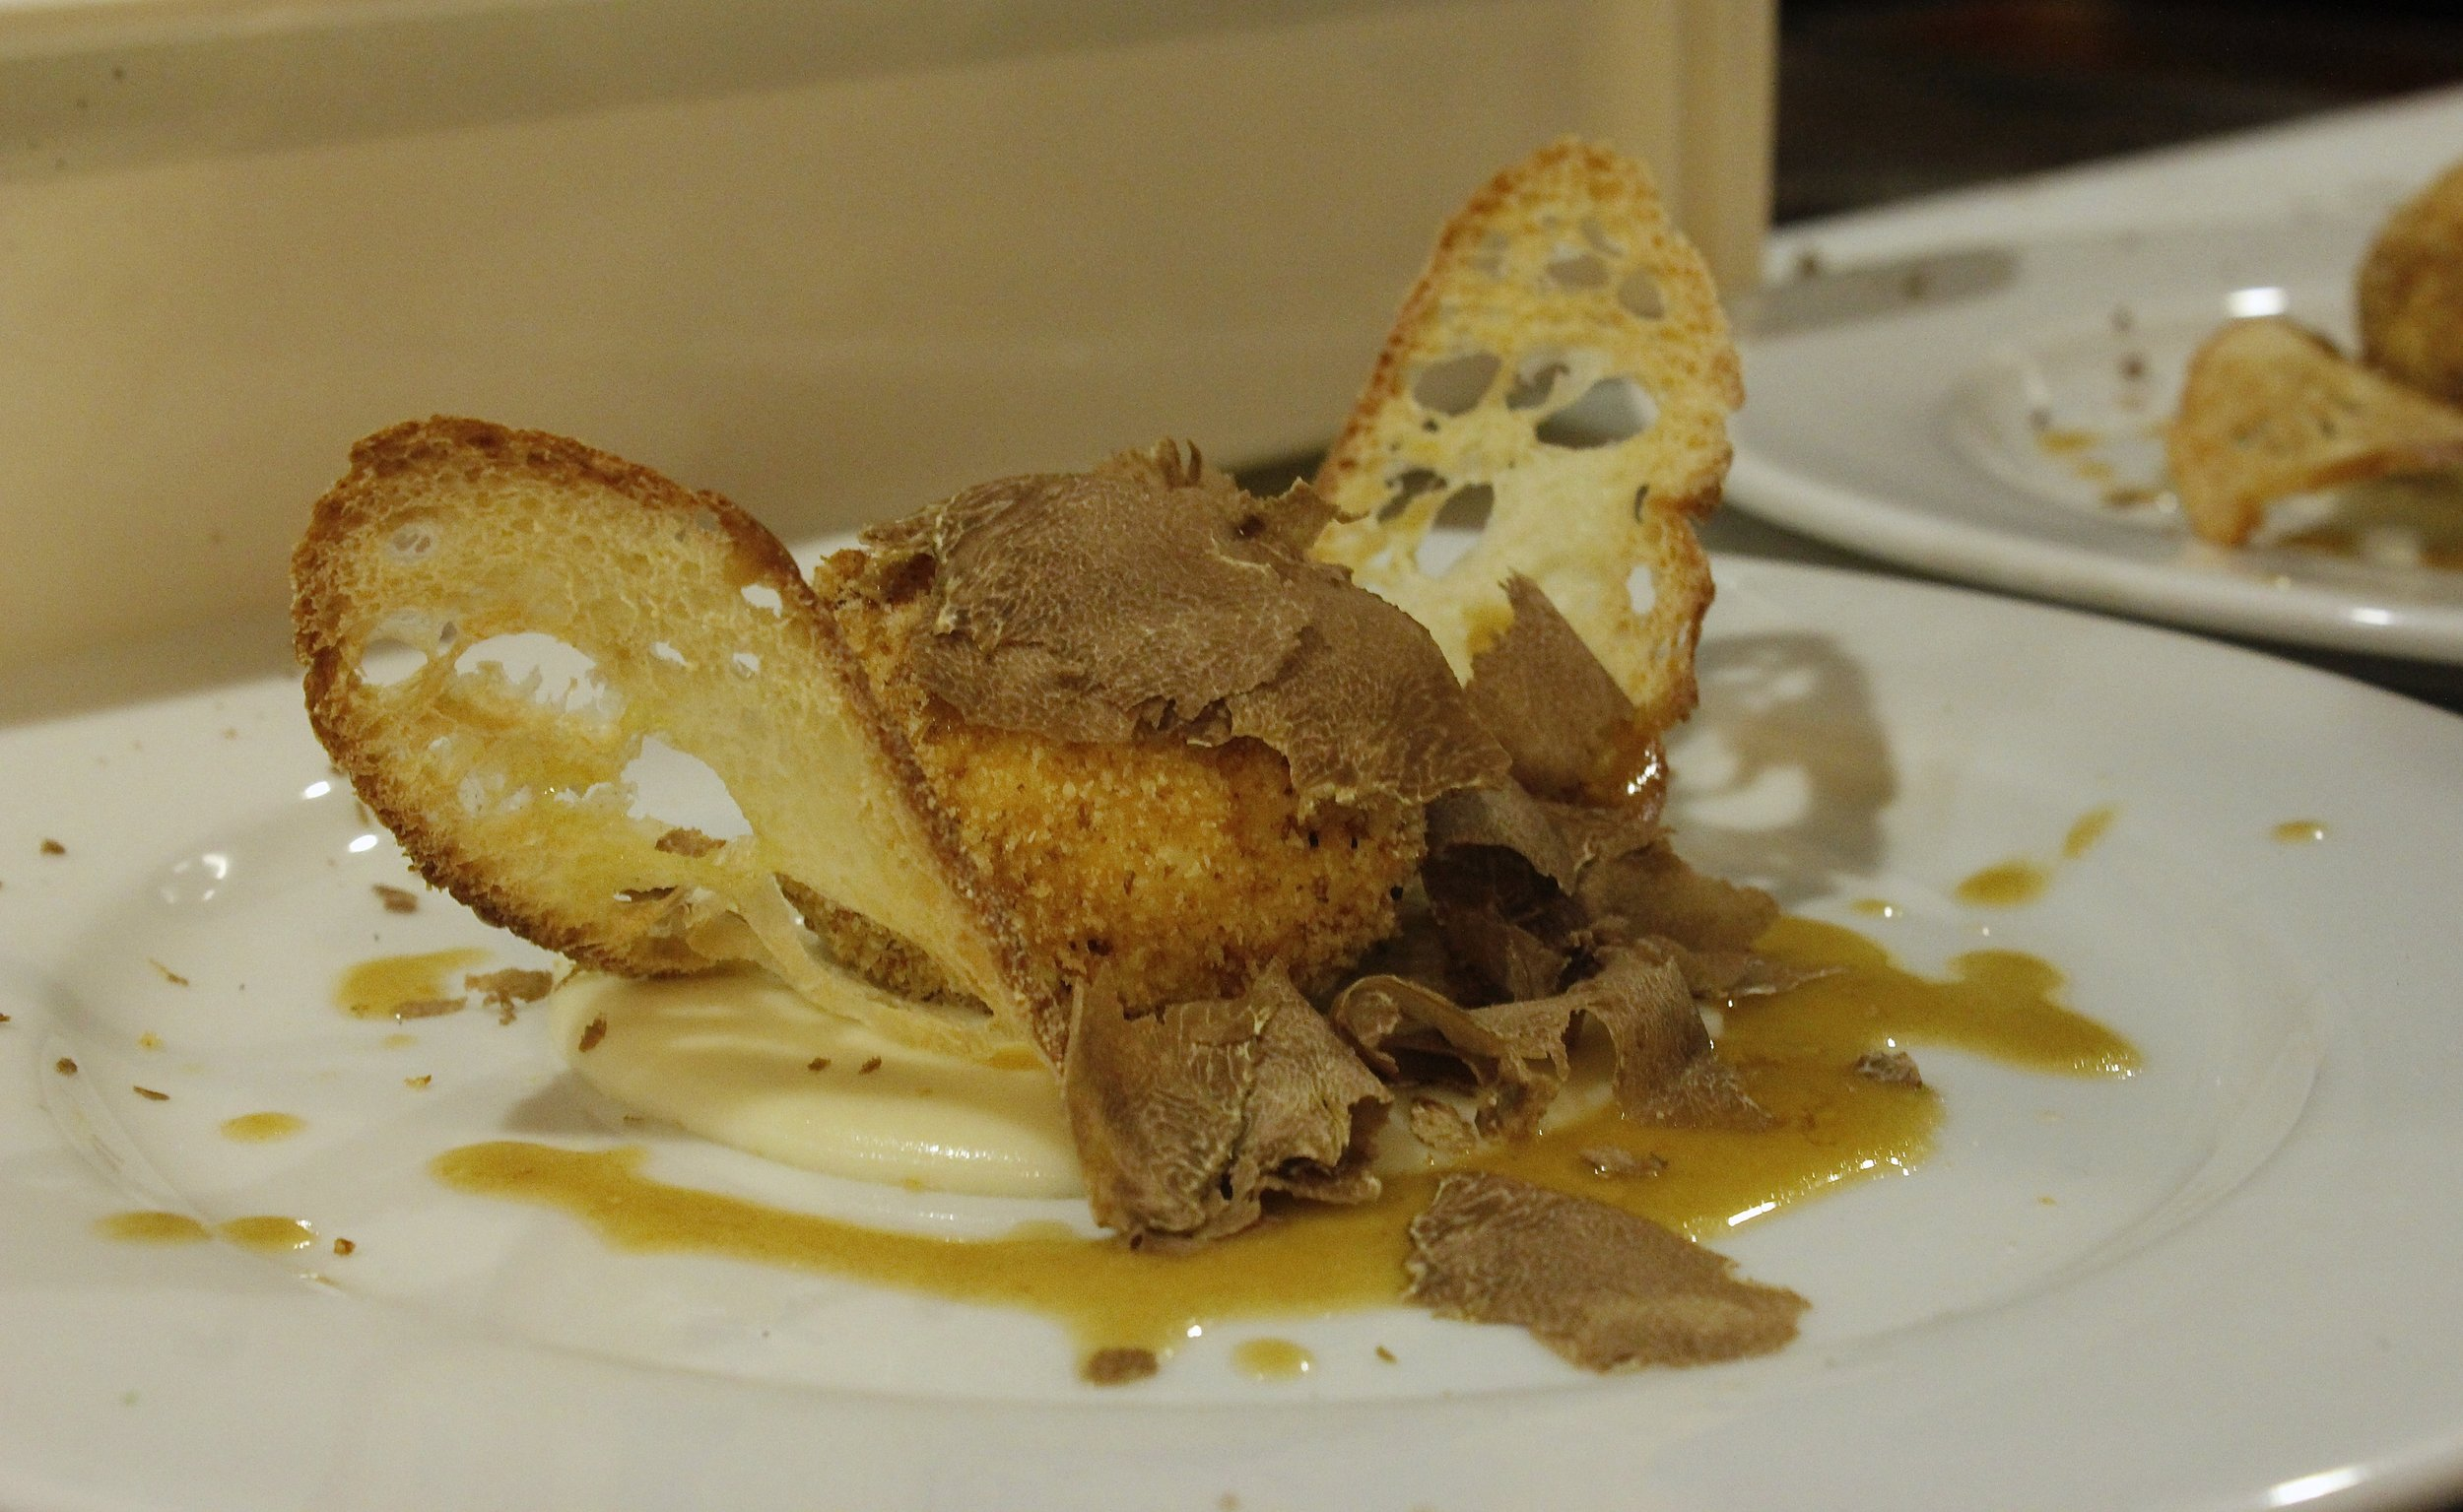 picture of cooked egg dish with truffle